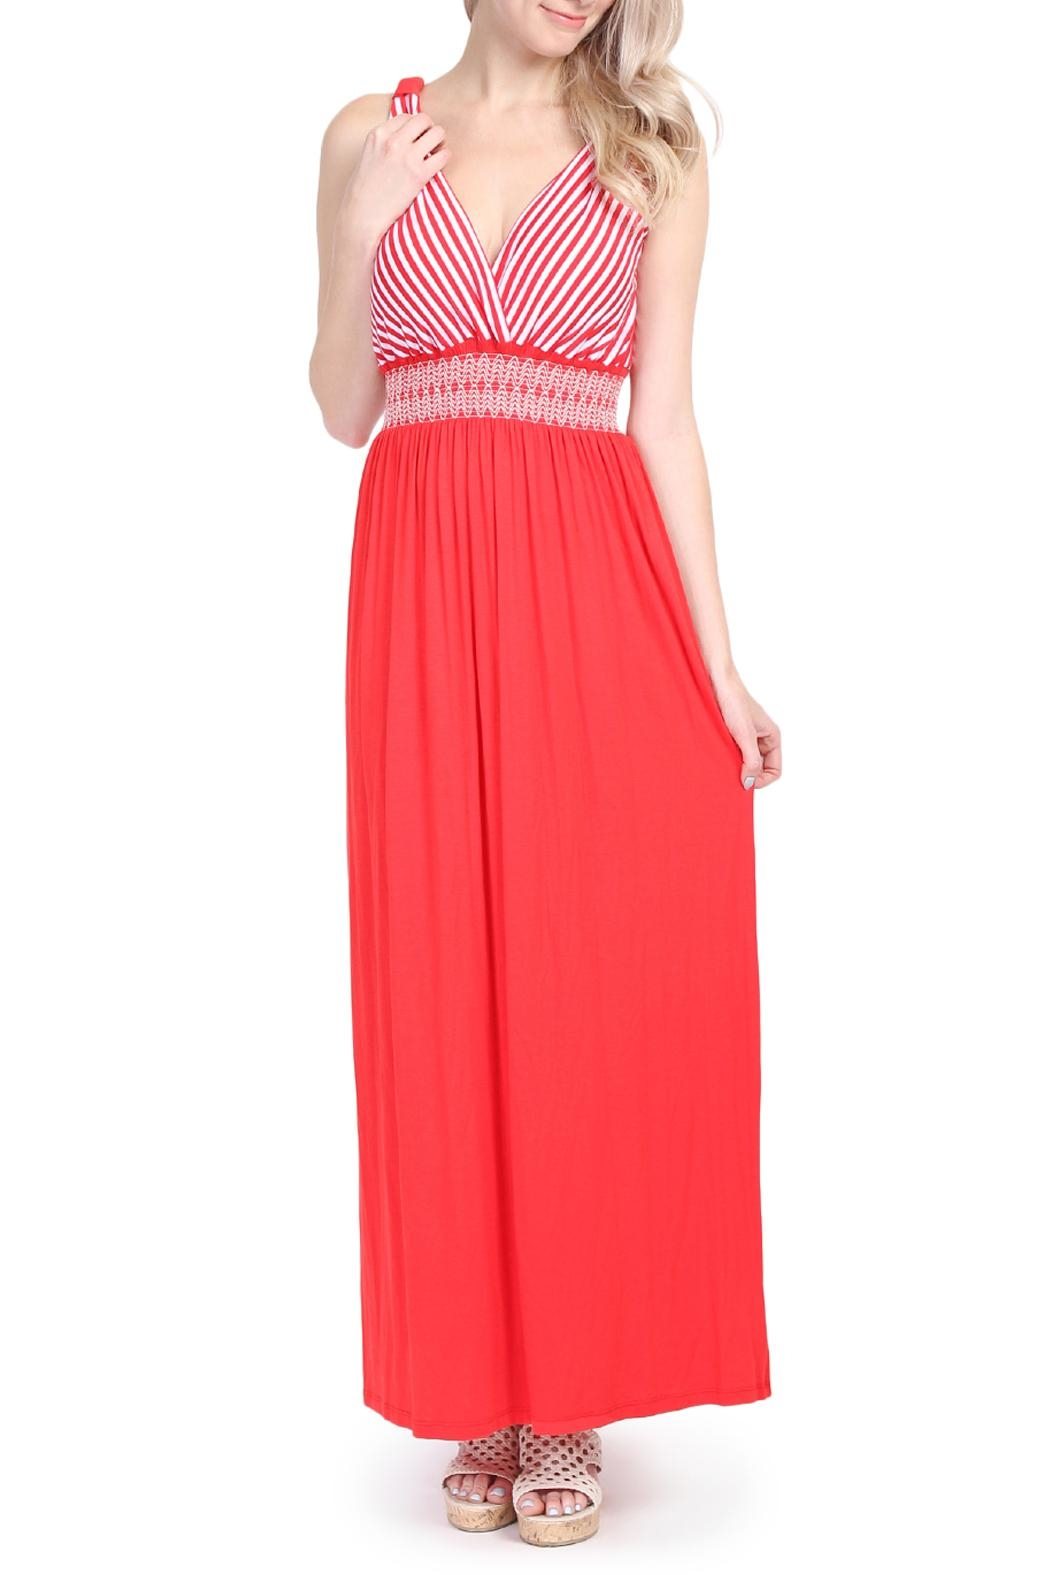 Riah Fashion Sleeveless Maxi Dress - Main Image